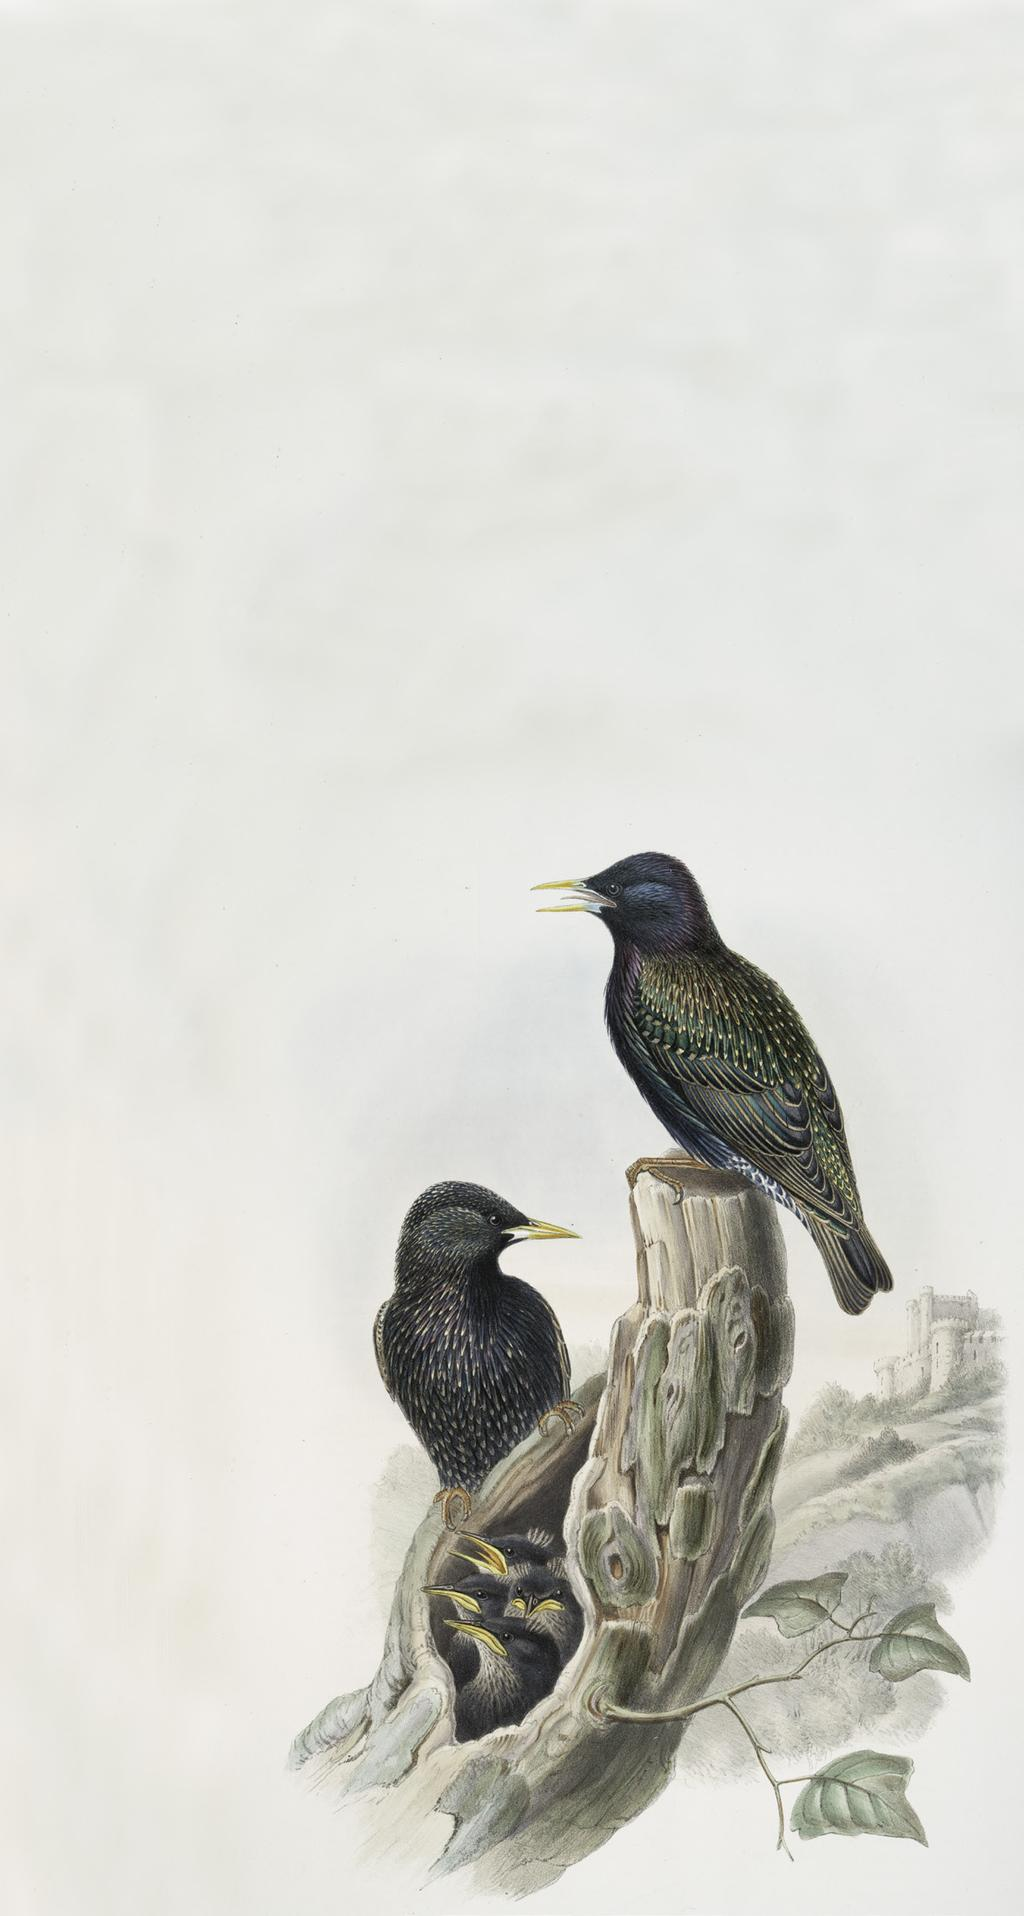 STEP 2 European Starling European starlings may look like harmless little birds, but they re actually a good example of an invasive species.